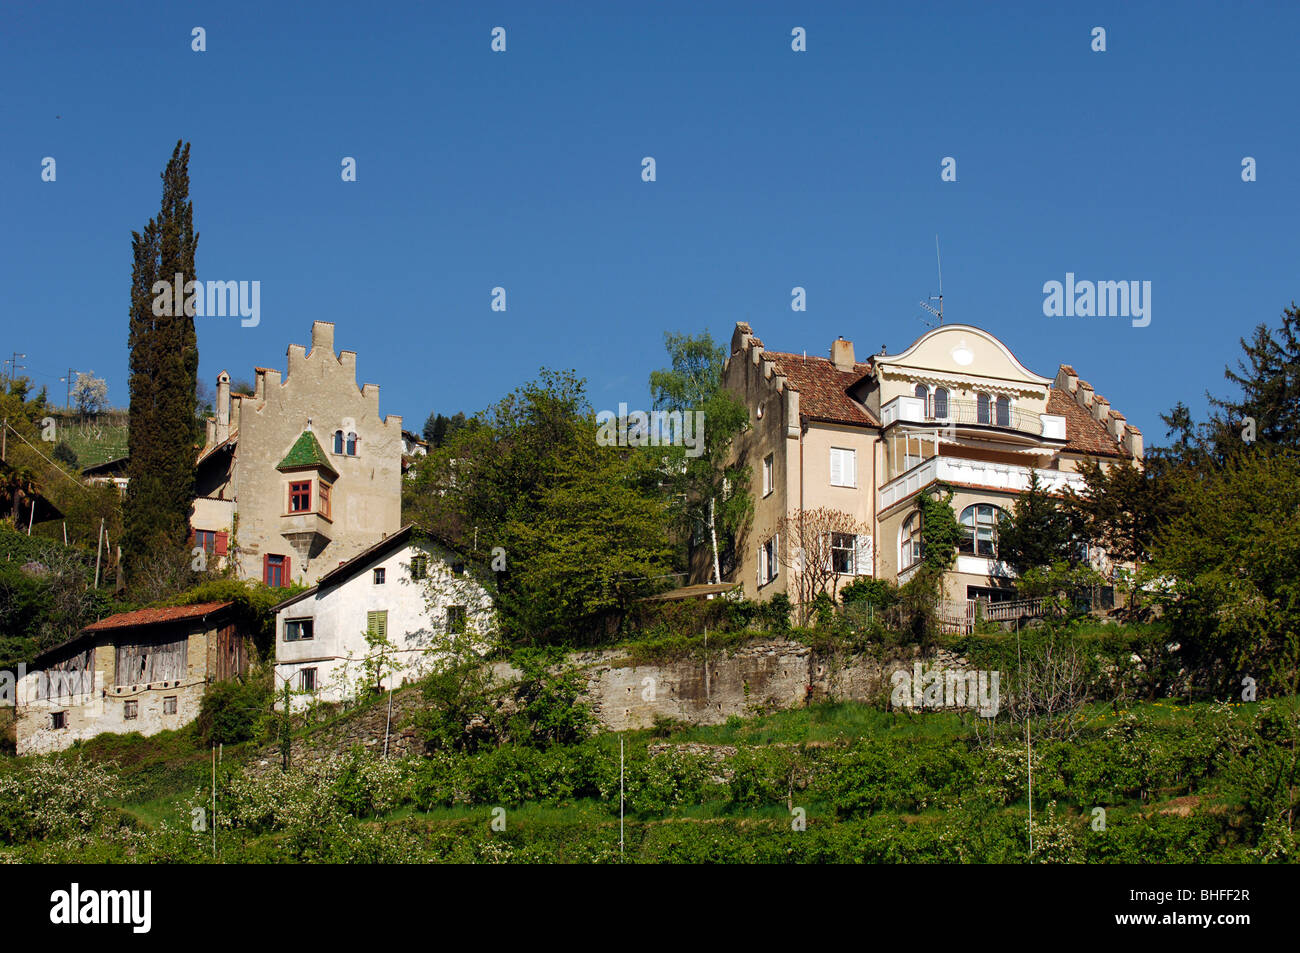 Venös Stock Photos & Venös Stock Images - Alamy